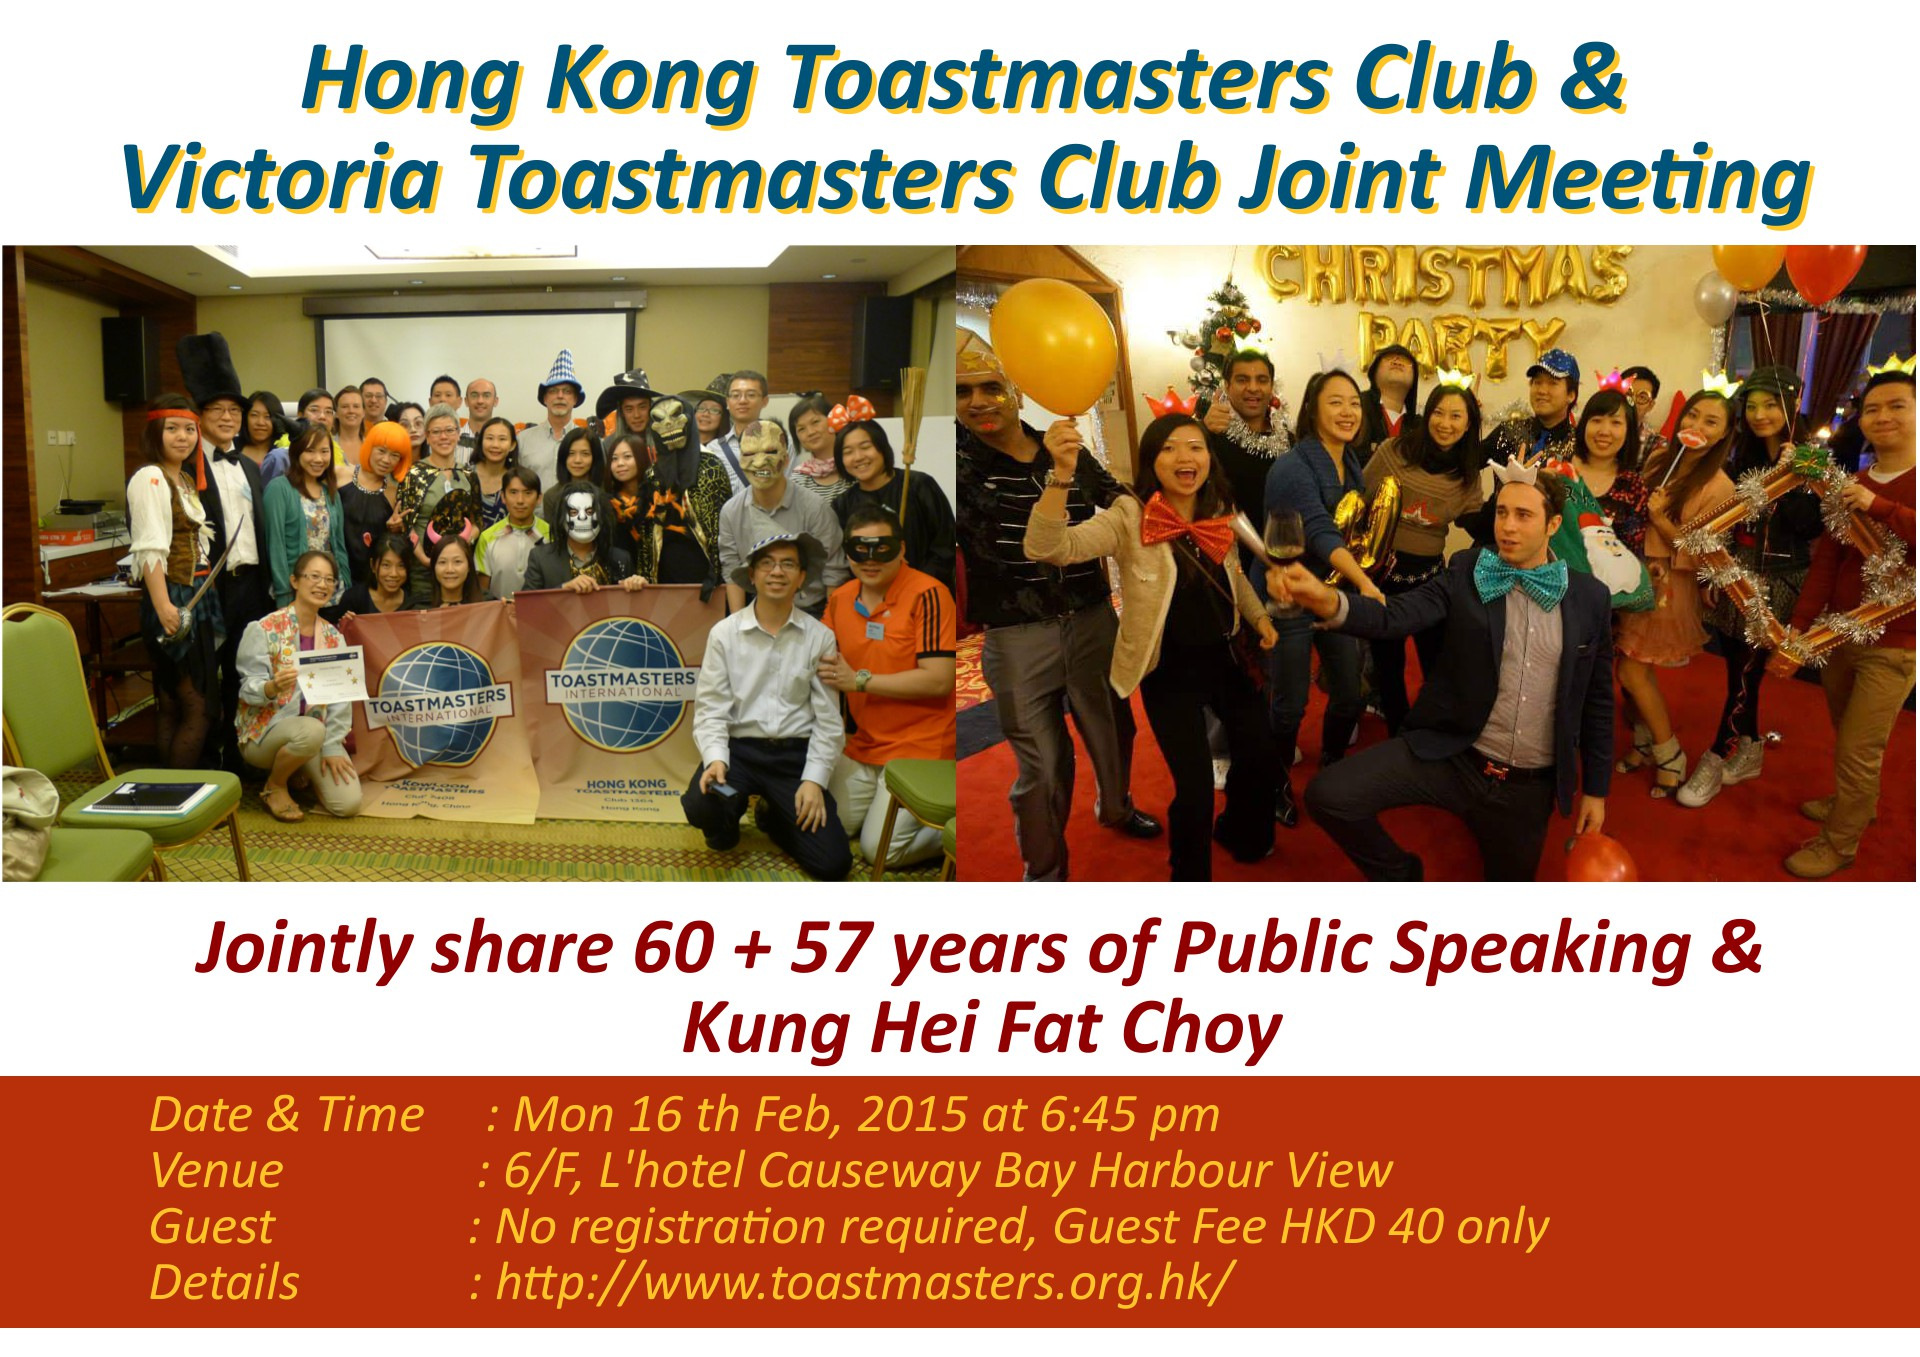 HKTMC International and Table Topics Speech Contest 2nd March 2015